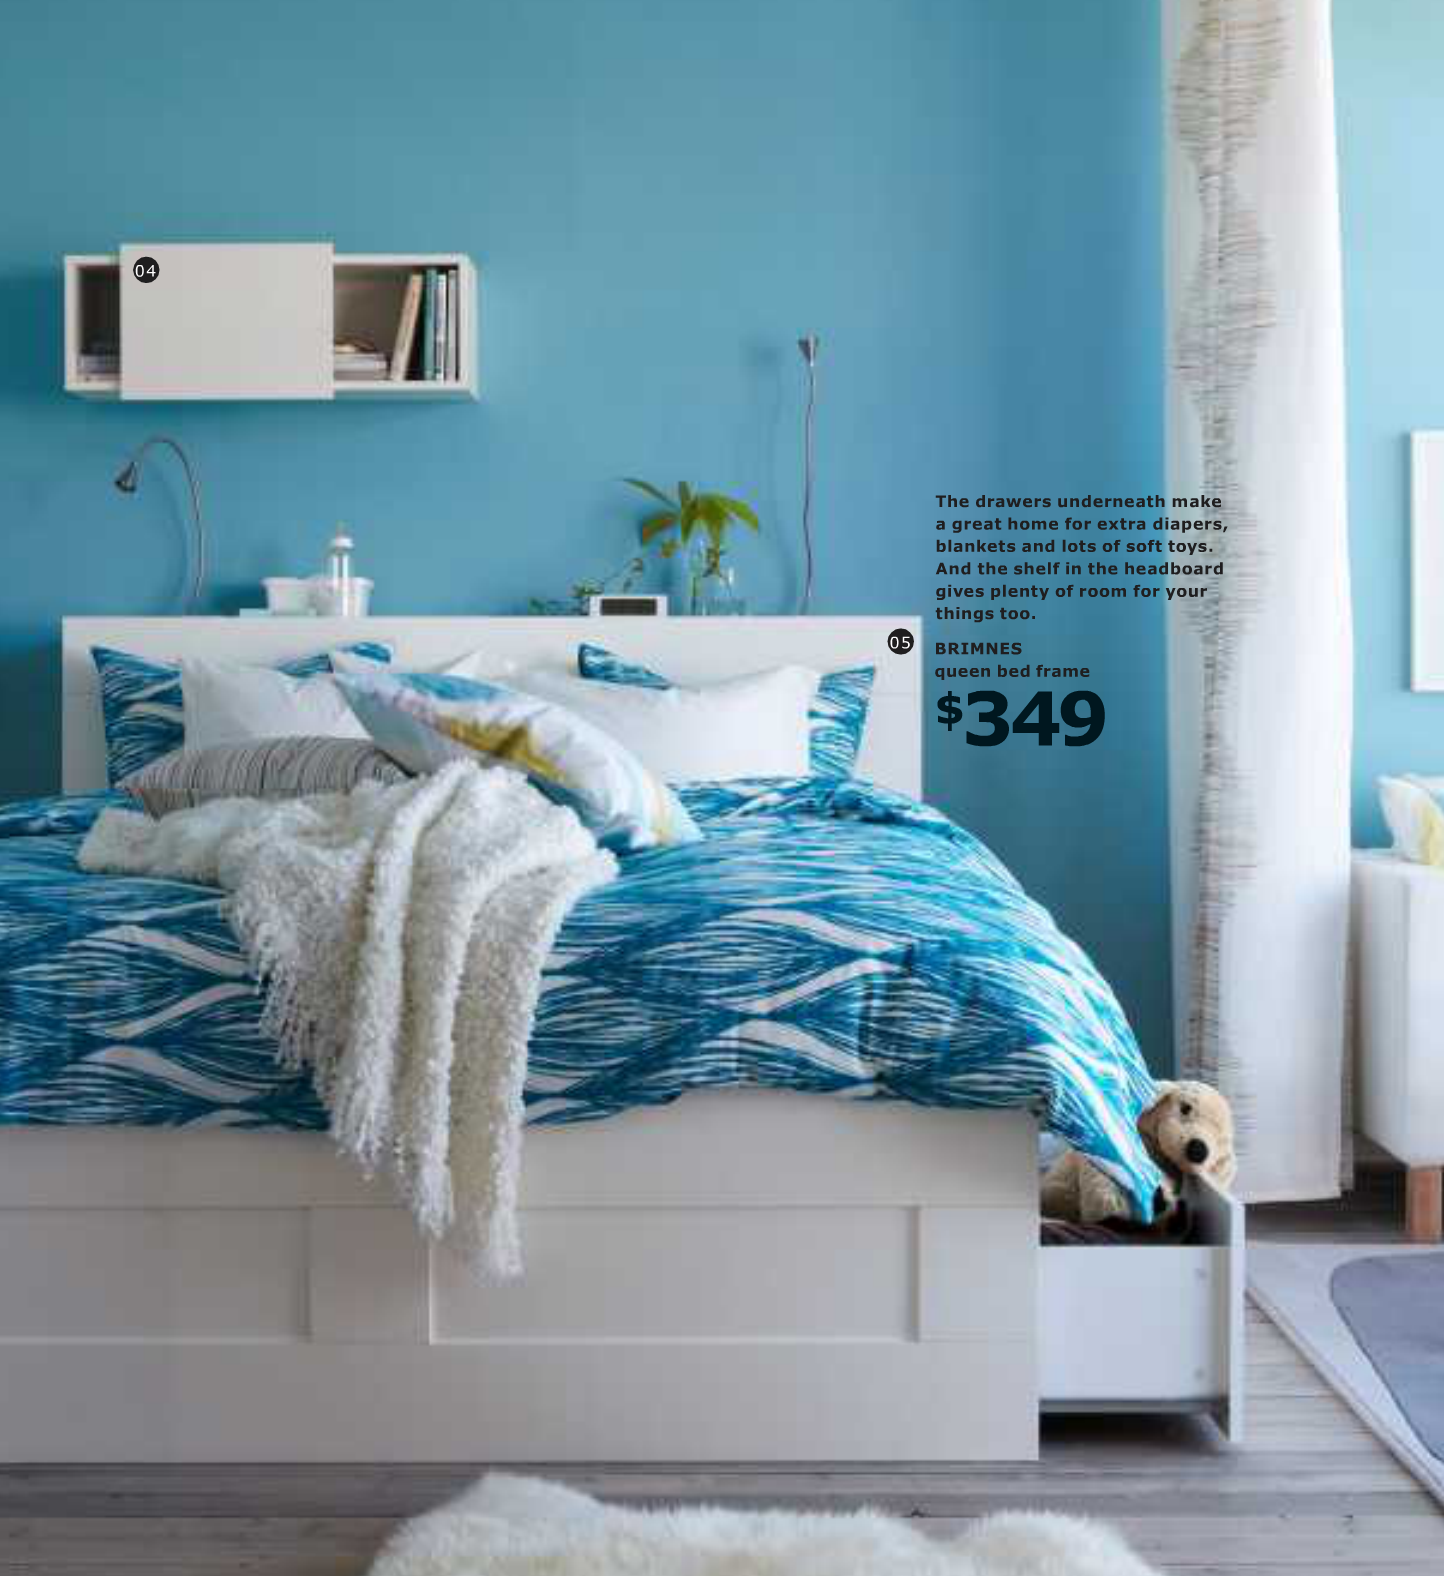 Blue bedroom design for teenagers - Ikea Modern Bedroom Decorating Design Ideas 2013 Here Is A Collection Of Designs Bedroom From Ikea 2013 Catalog Ikea Bedroom Is